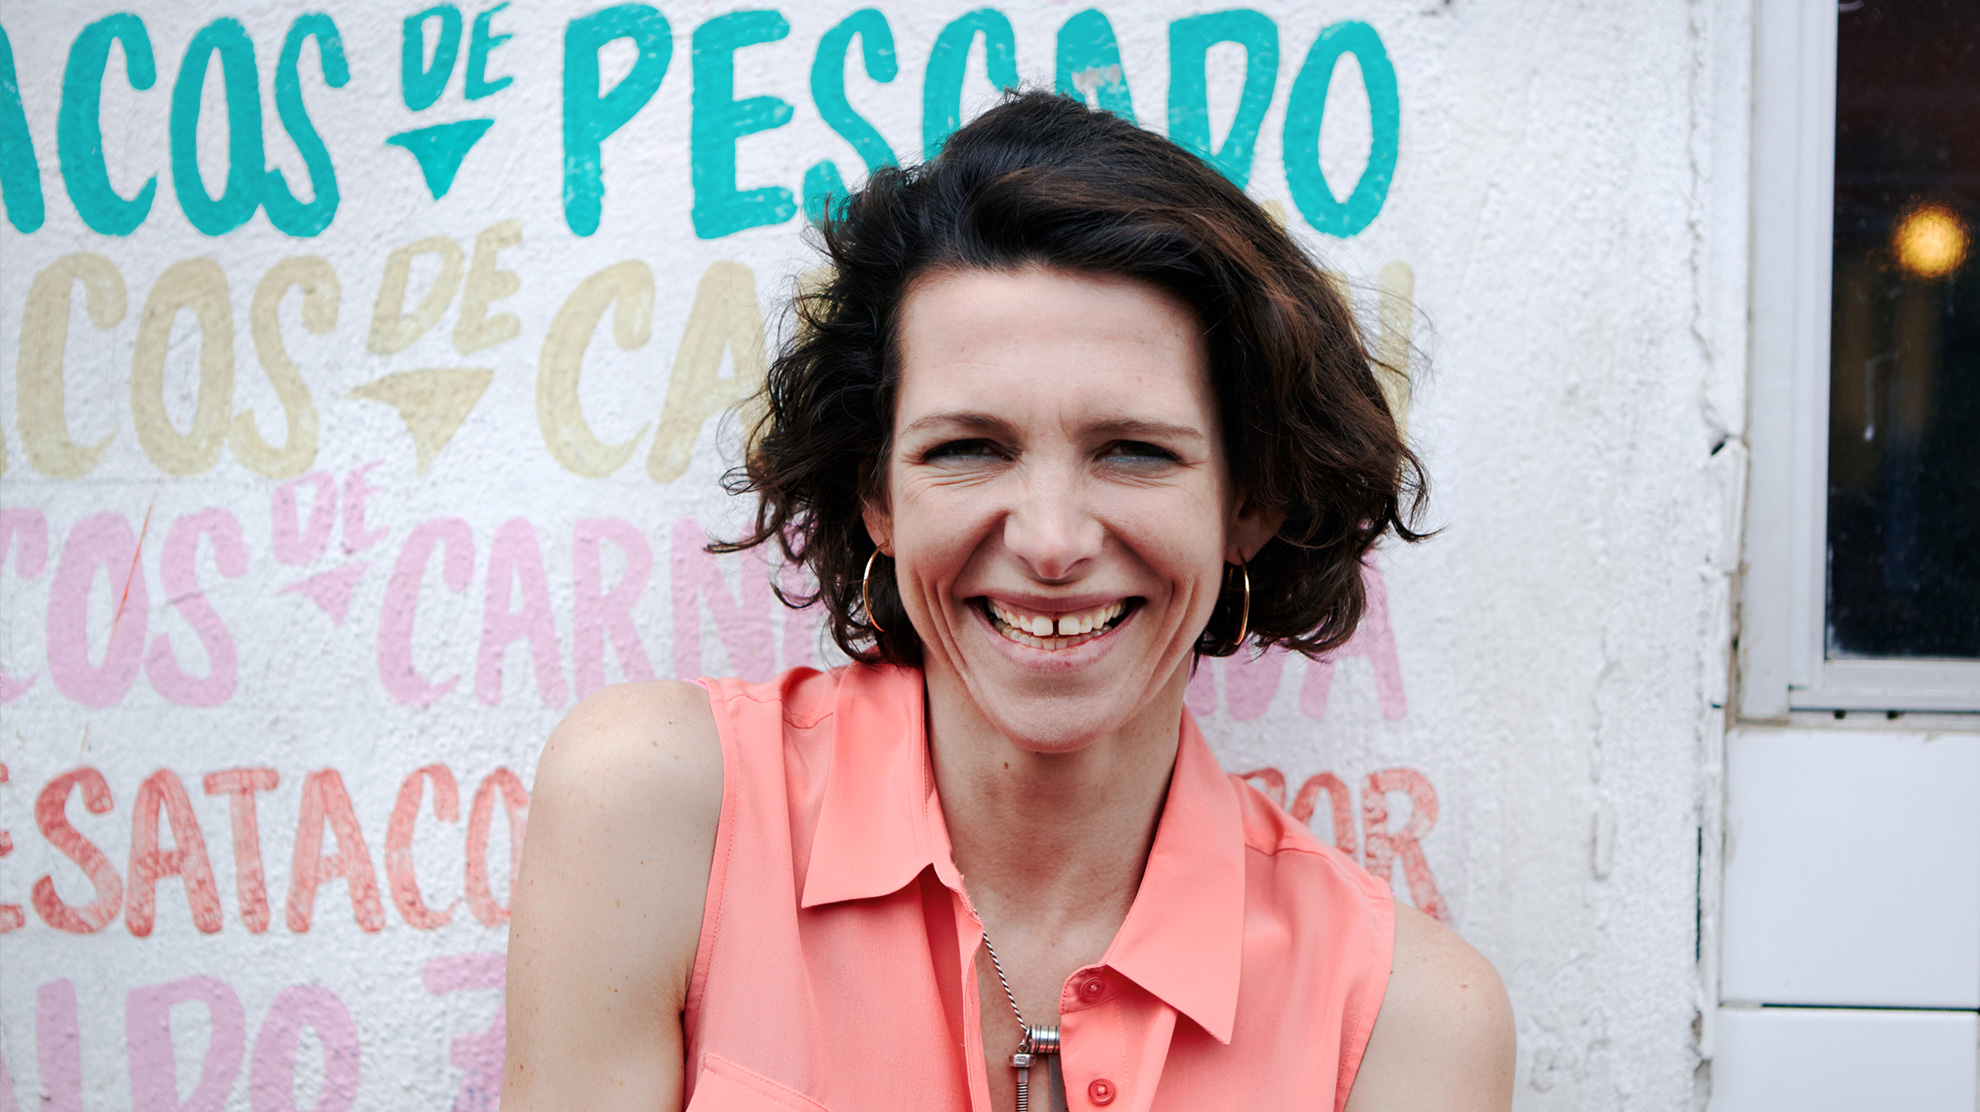 With great food comes great responsibility, says chef and food writer Thomasina Miers